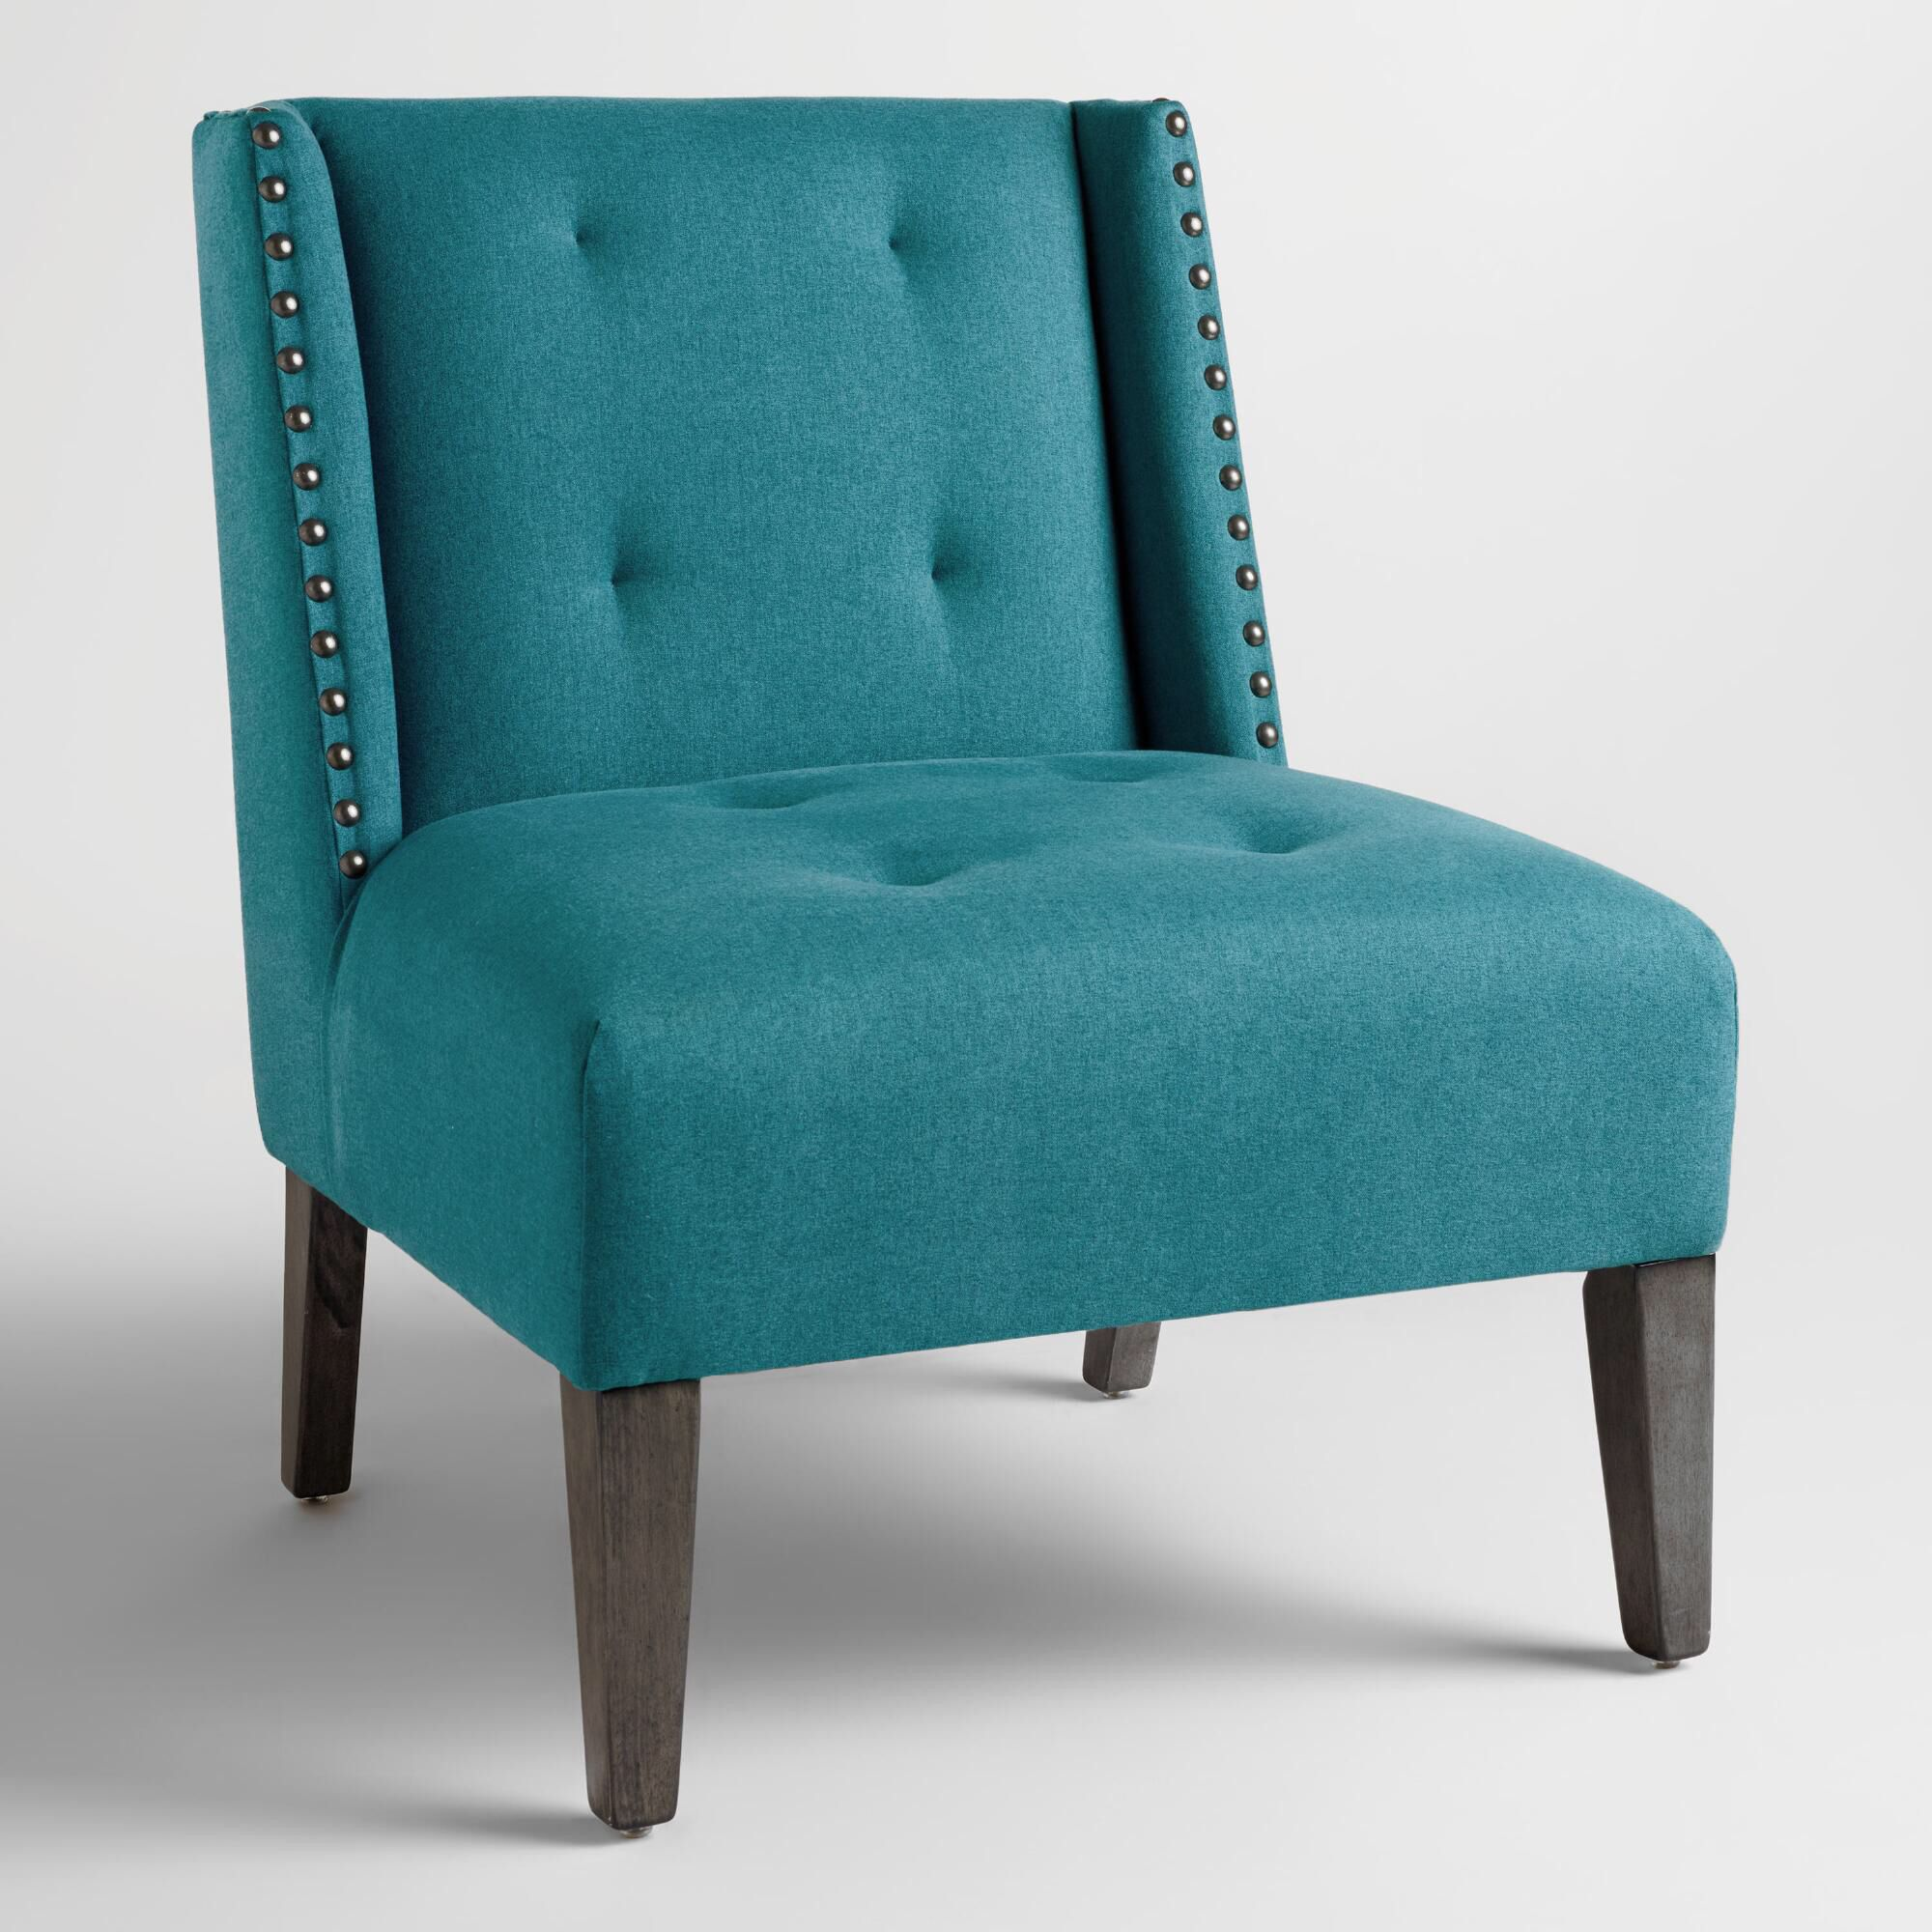 Park Art|My WordPress Blog_Turquoise Accent Chair For Office